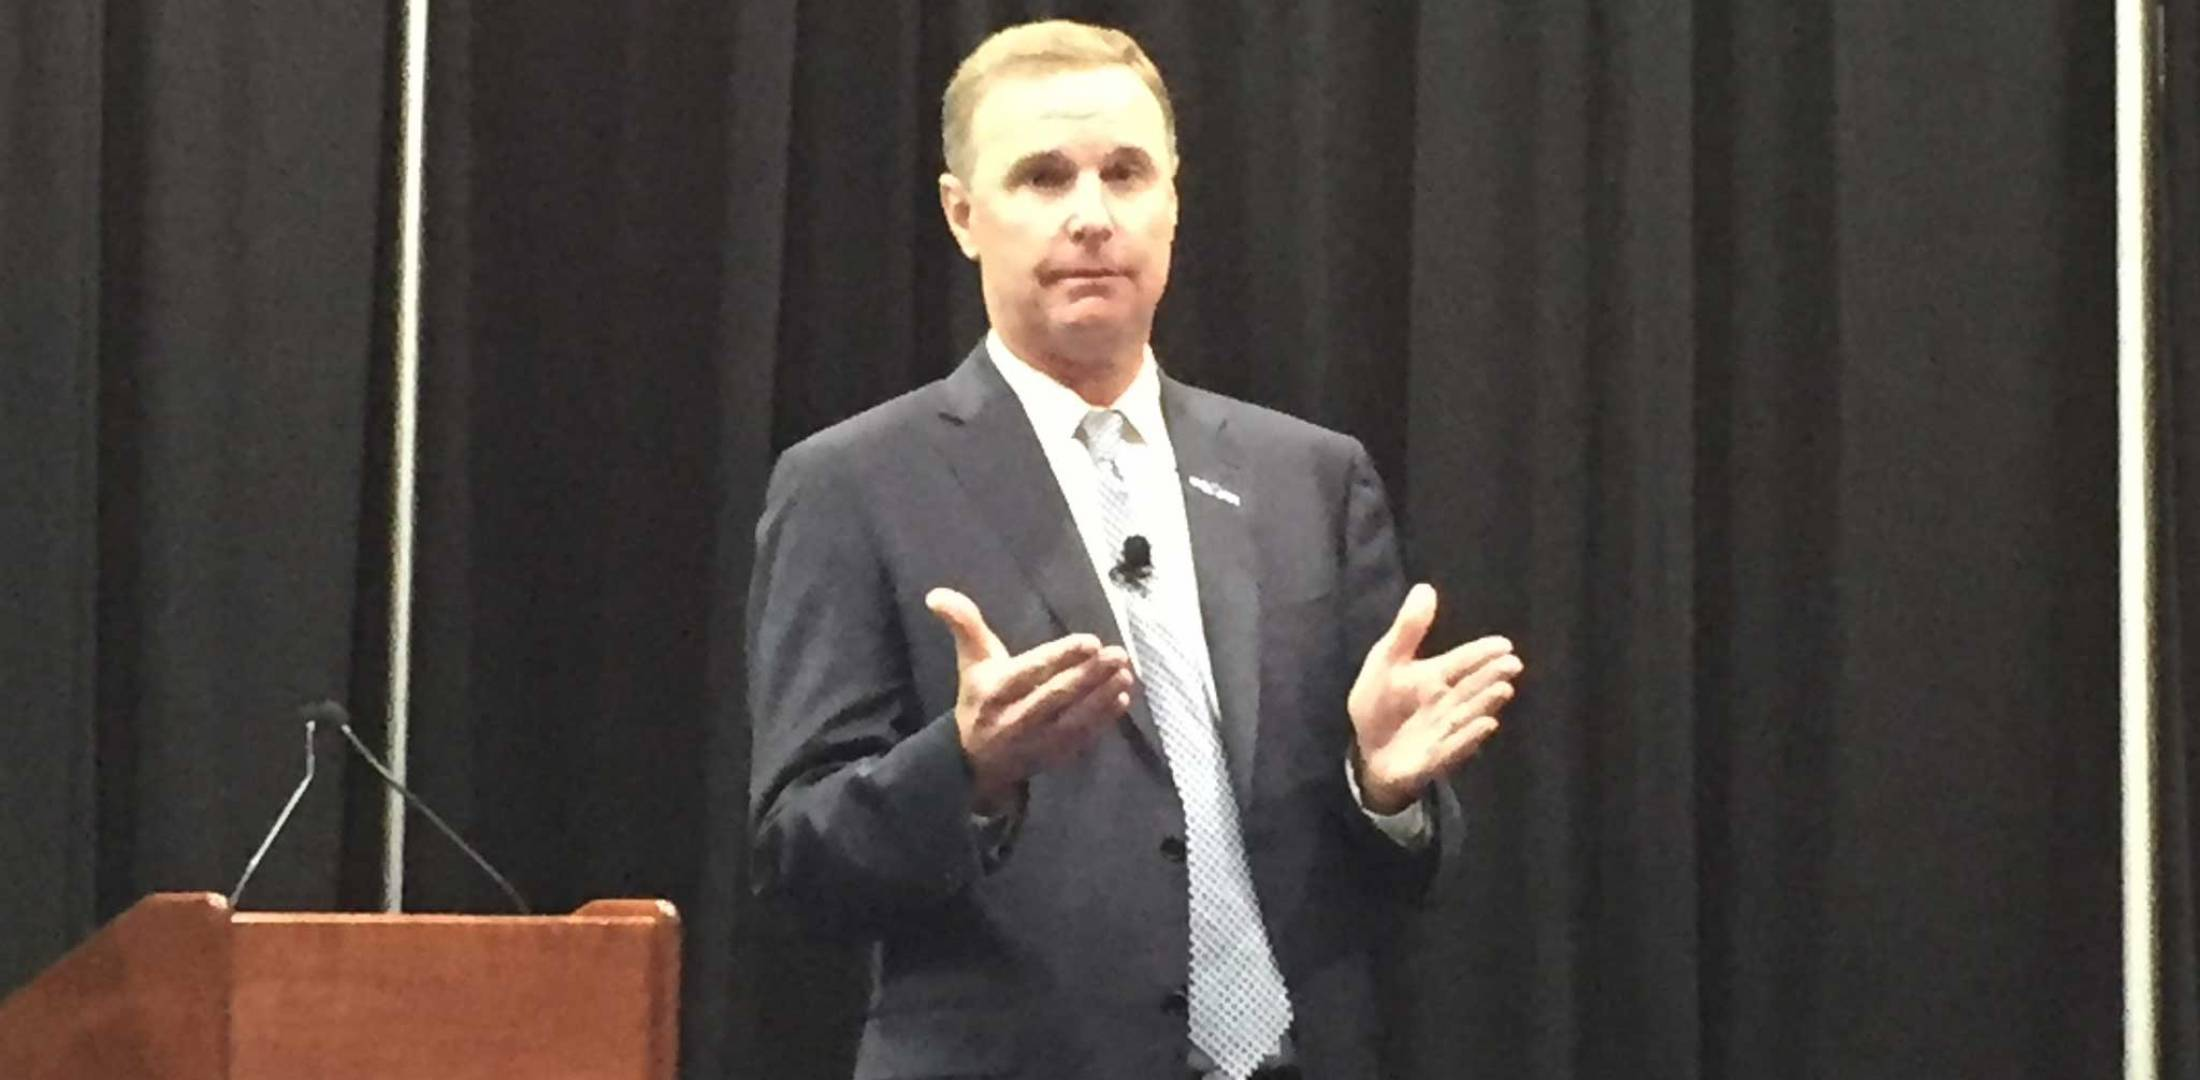 NBAA President and CEO Ed Bolen